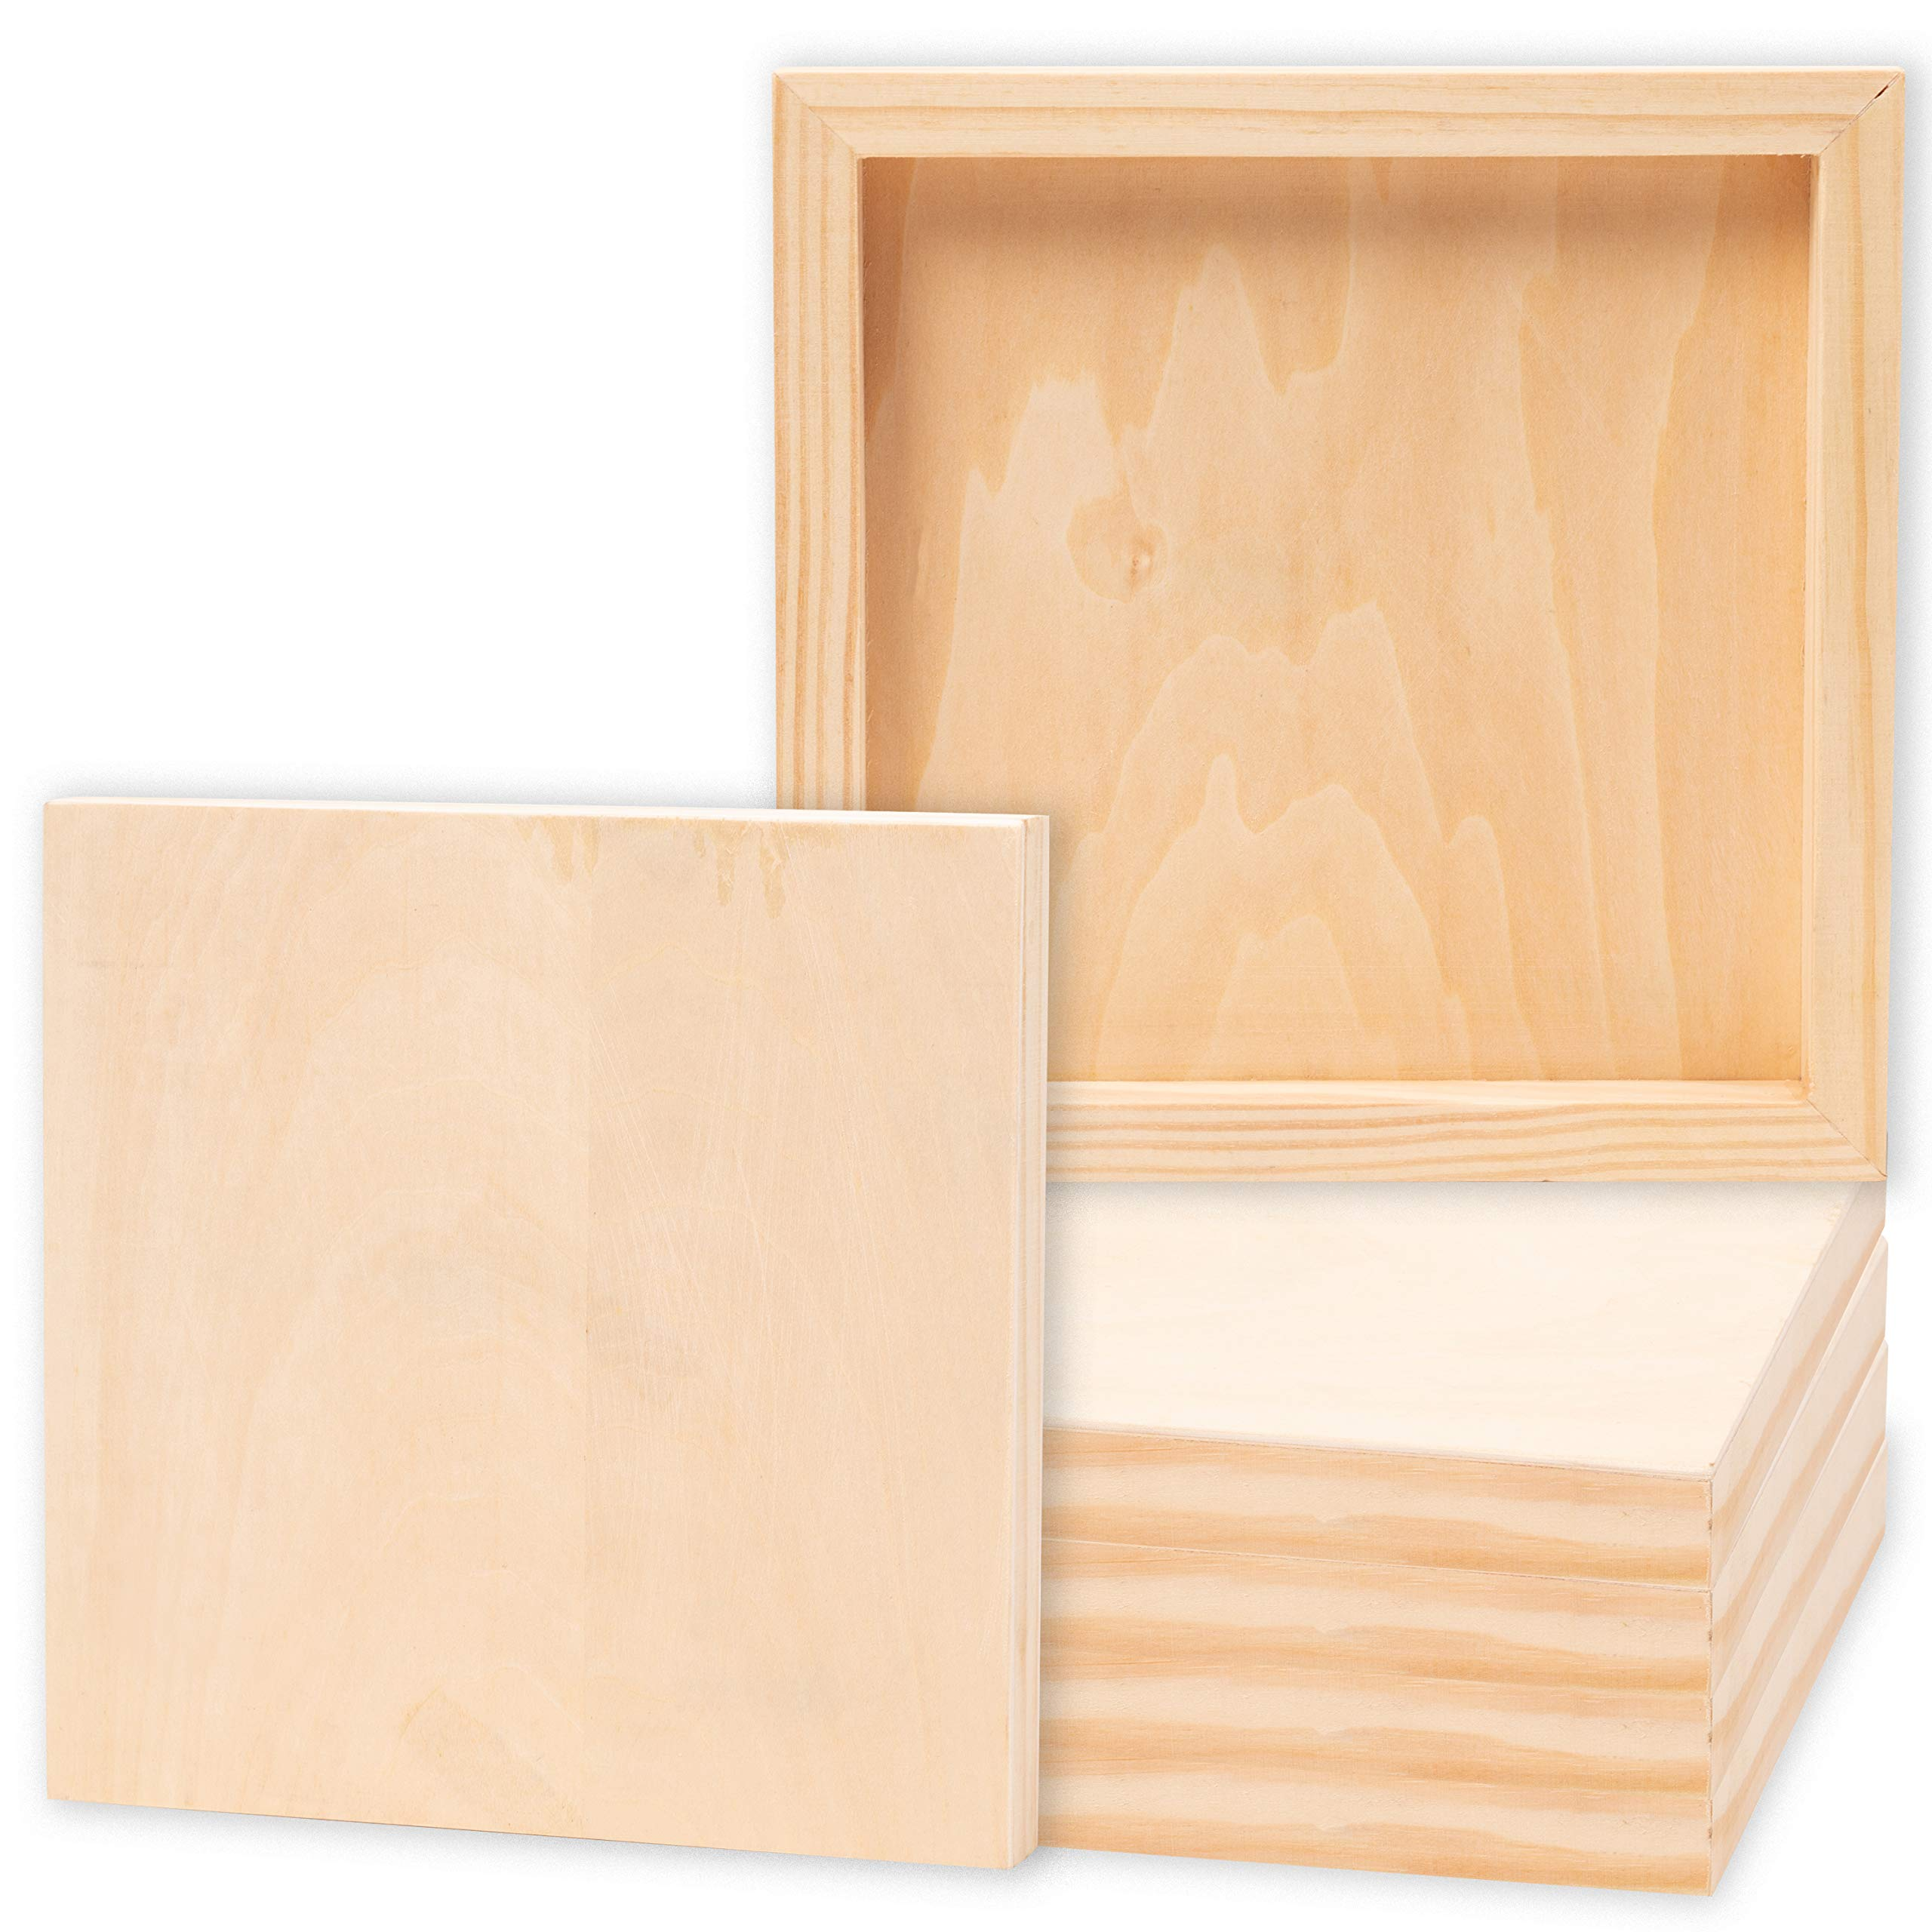 Juvale 6-Pack 8x8 Unfinished Wood Canvas Cradled Panel Boards for Painting, Drawing, Arts & Crafts by Juvale